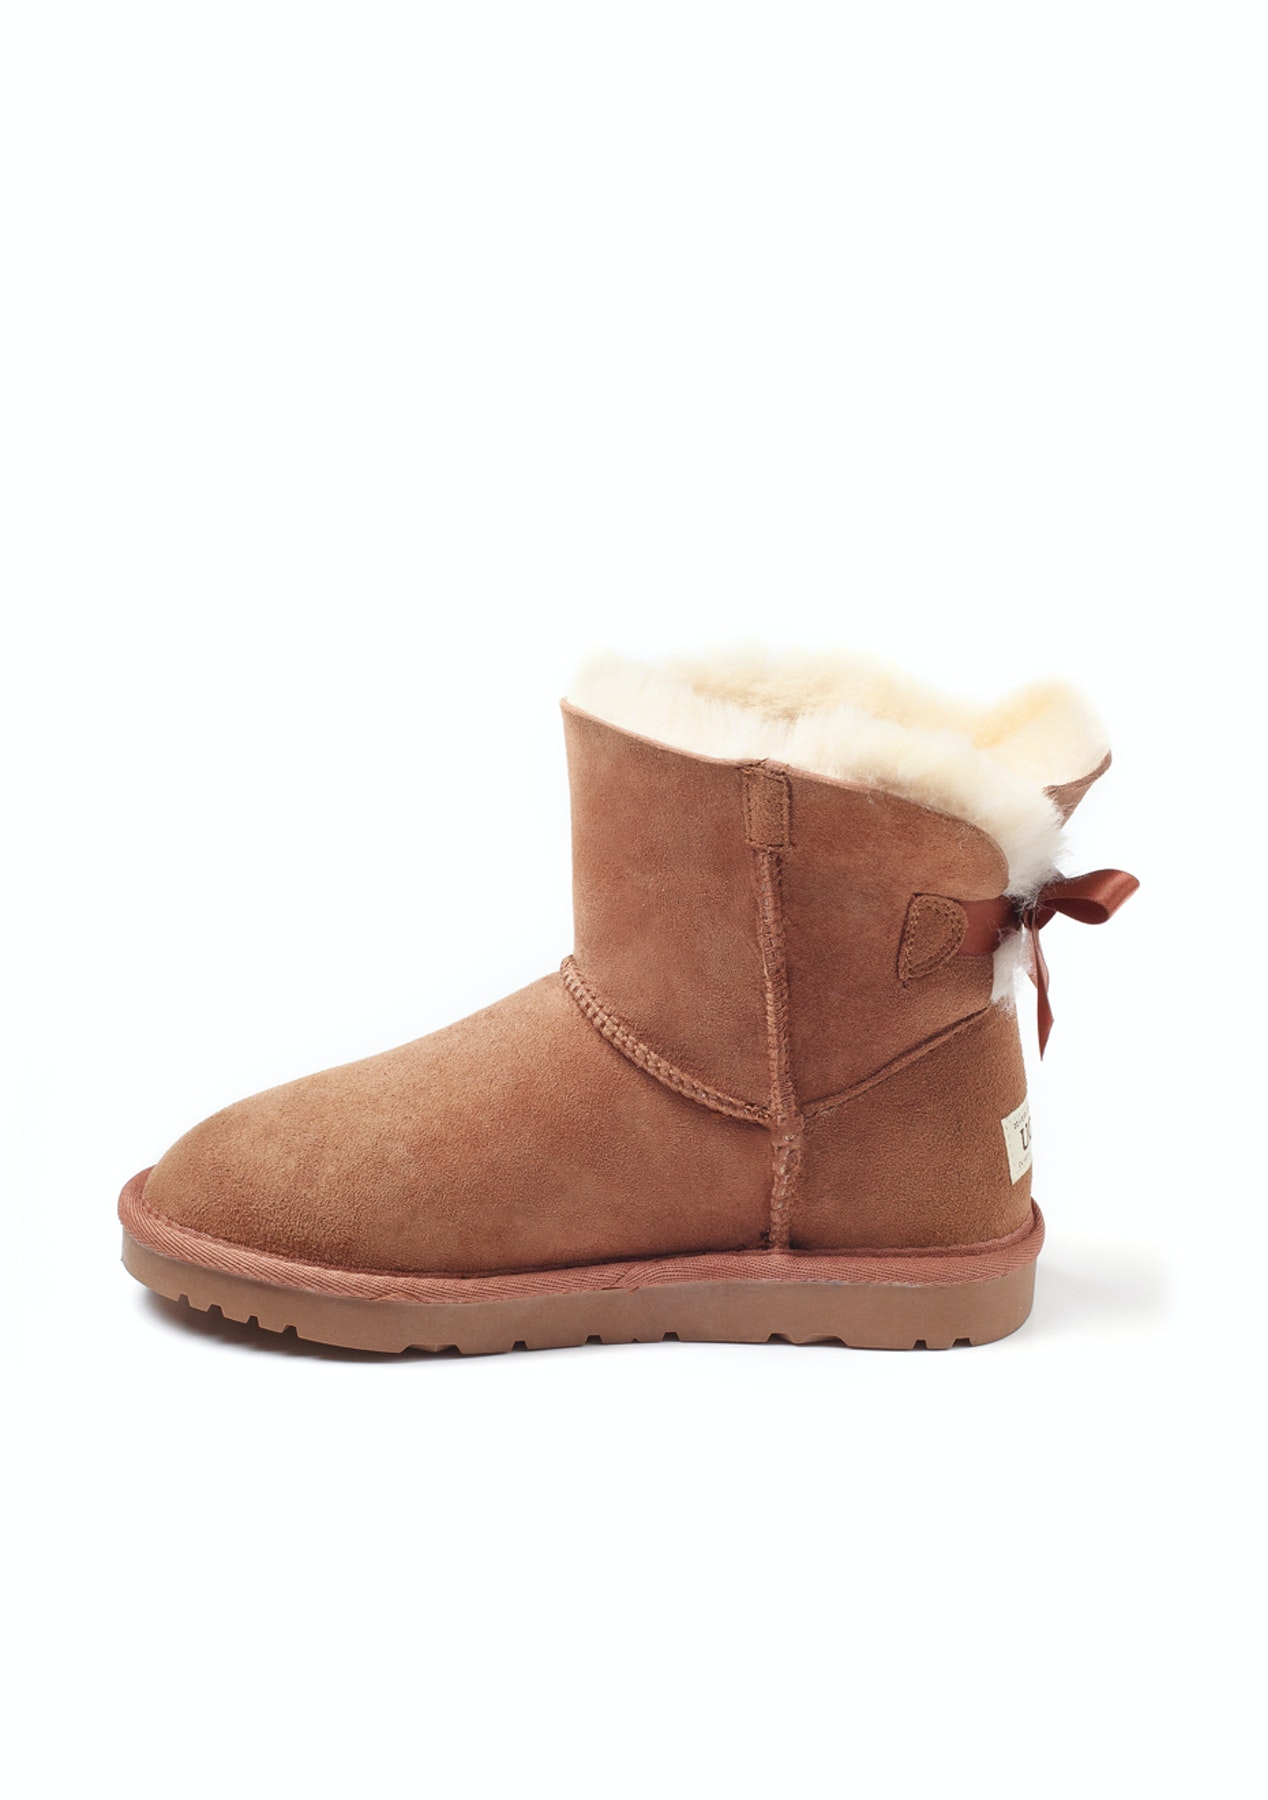 484c0c530b2 Ozwear - Ugg Classic 1 Ribbon Boots (Water Resistant) - Chestnut